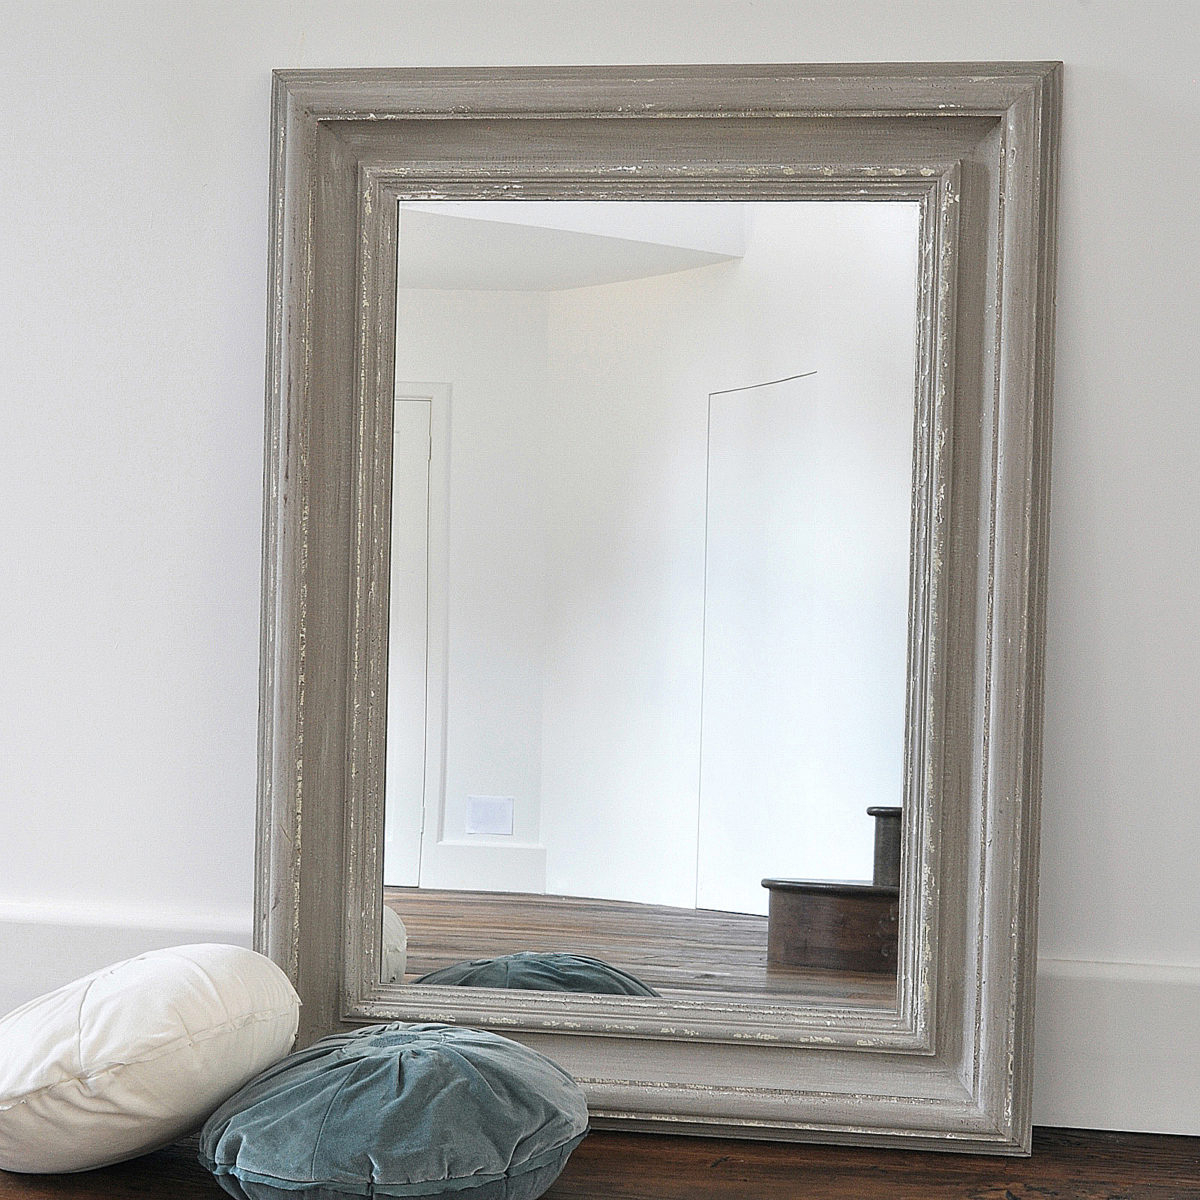 Most Recent Chunky Antique Grey Wooden Wall Mirror Inside Wooden Wall Mirrors (View 10 of 20)